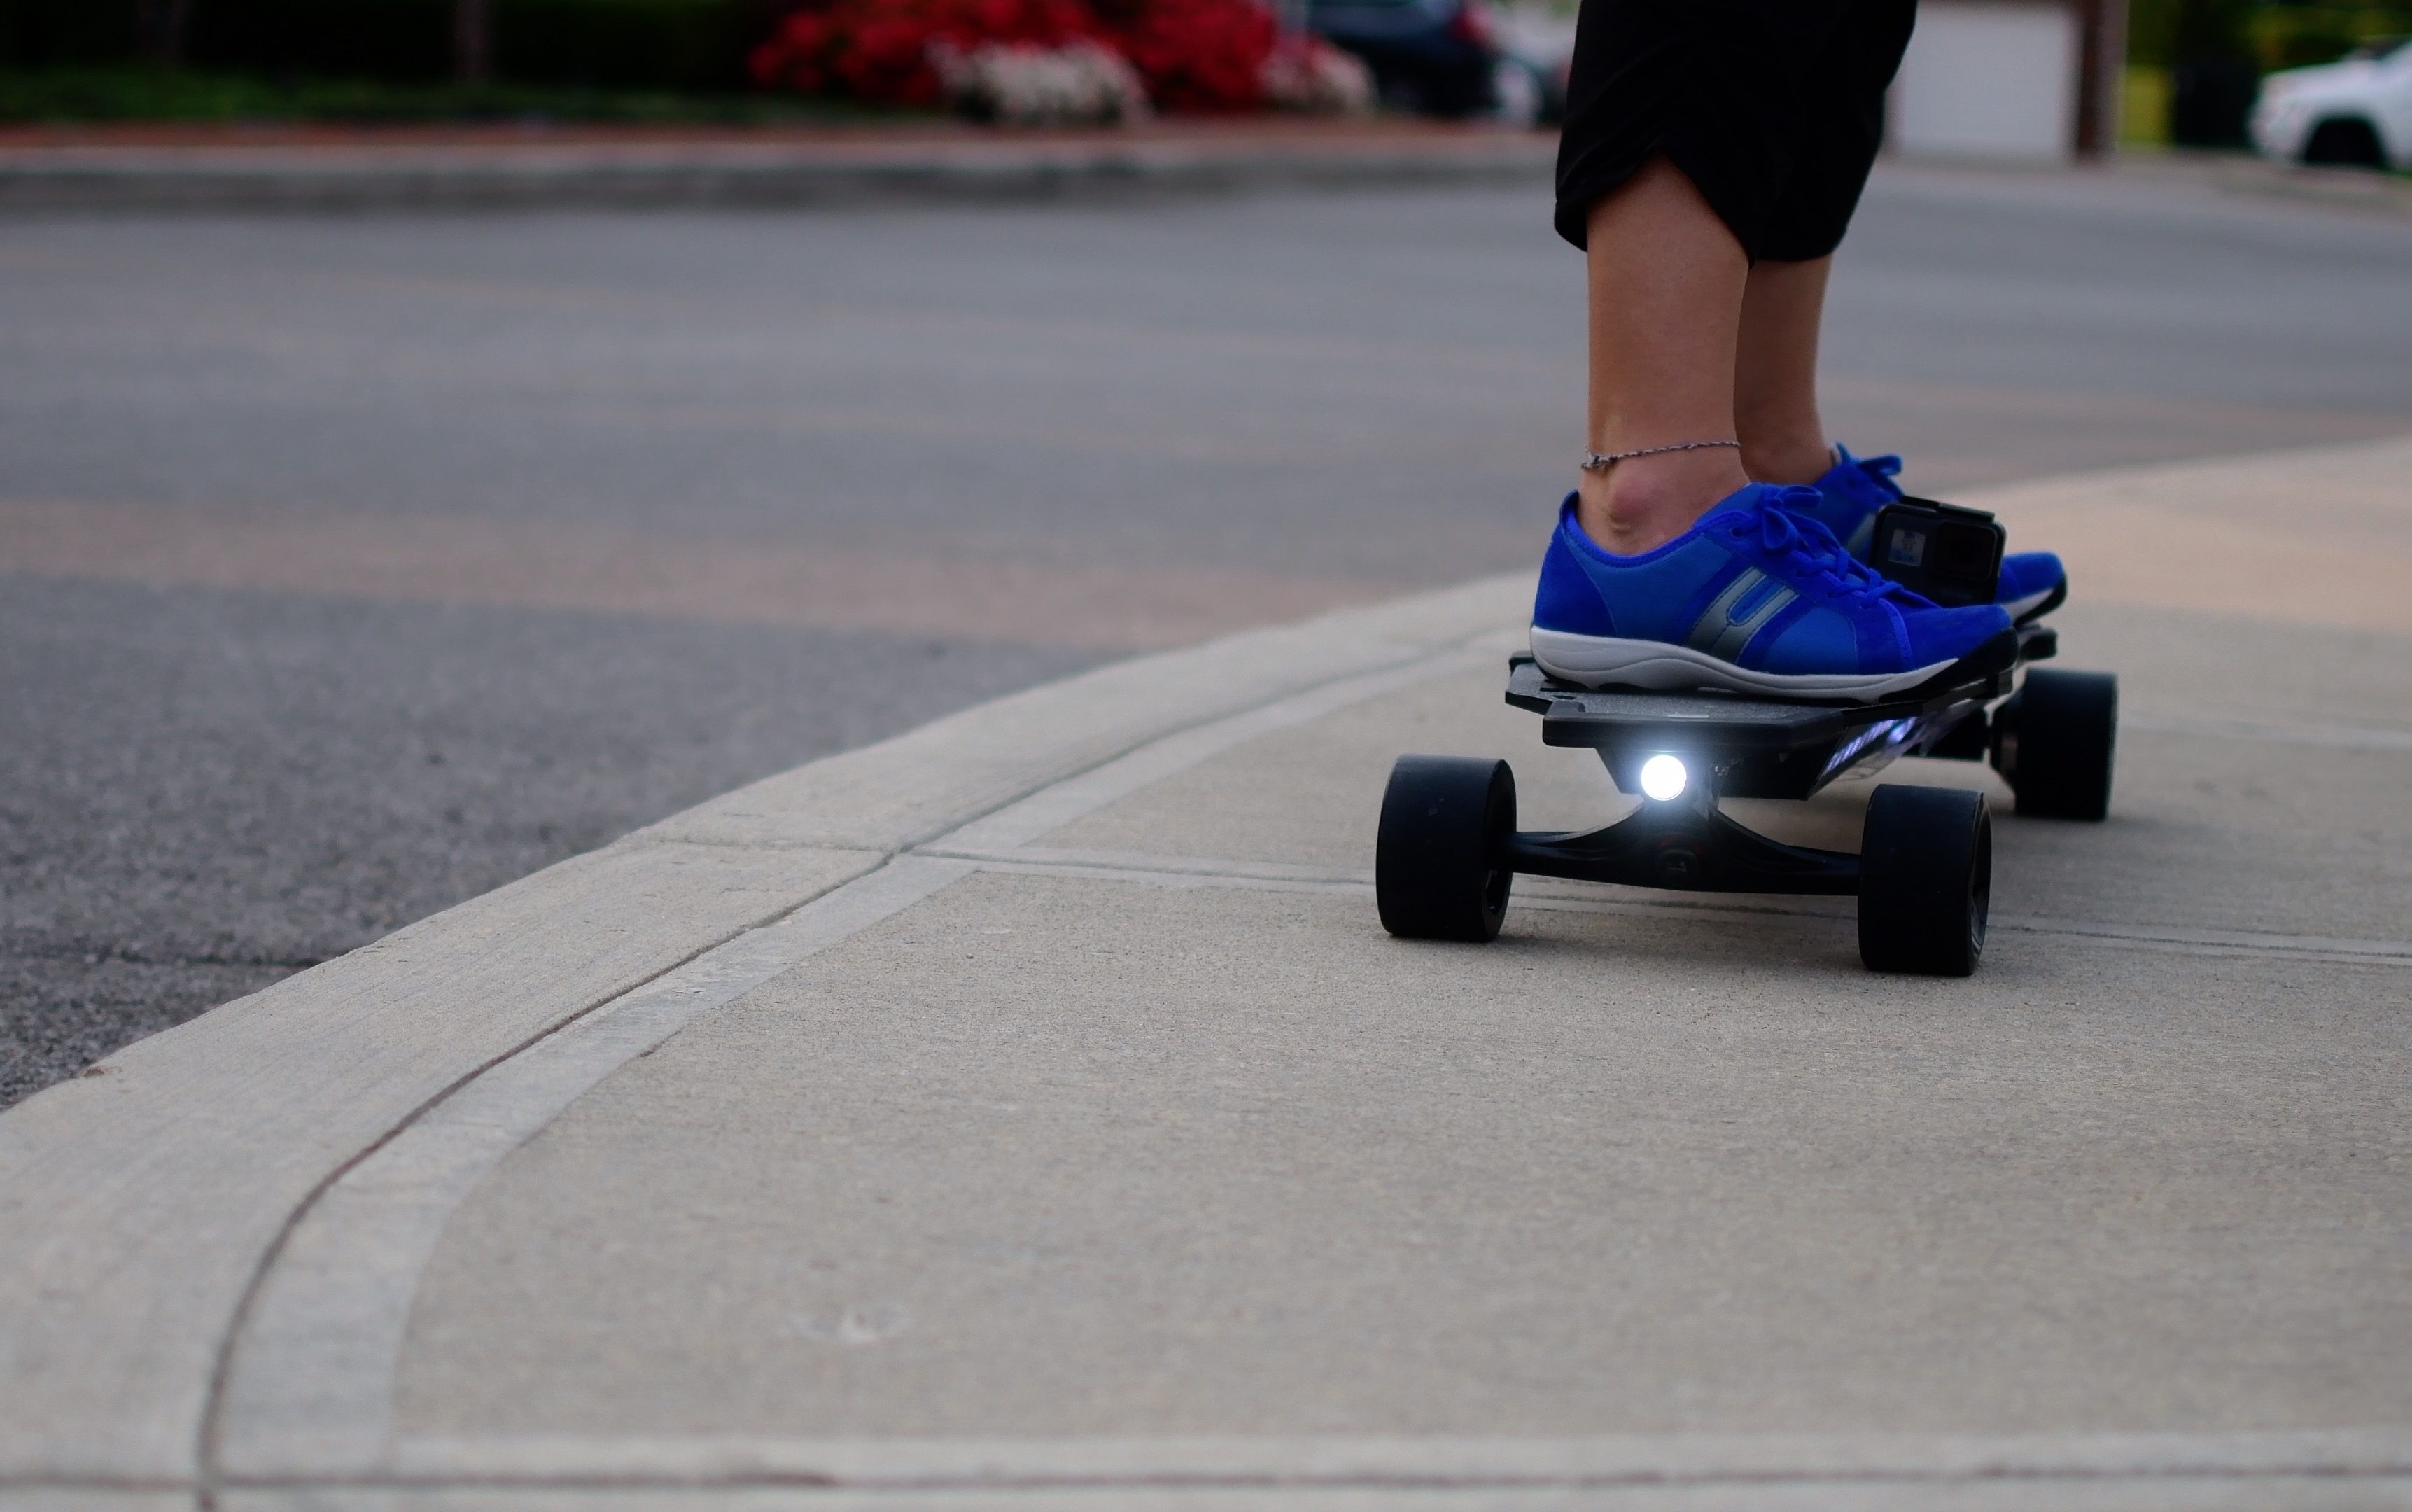 Electric Skateboards Have Started To Take Off In Pority Similar The Whole Hoverboard Craze Serpent W Is One Of Two New Boards That Are